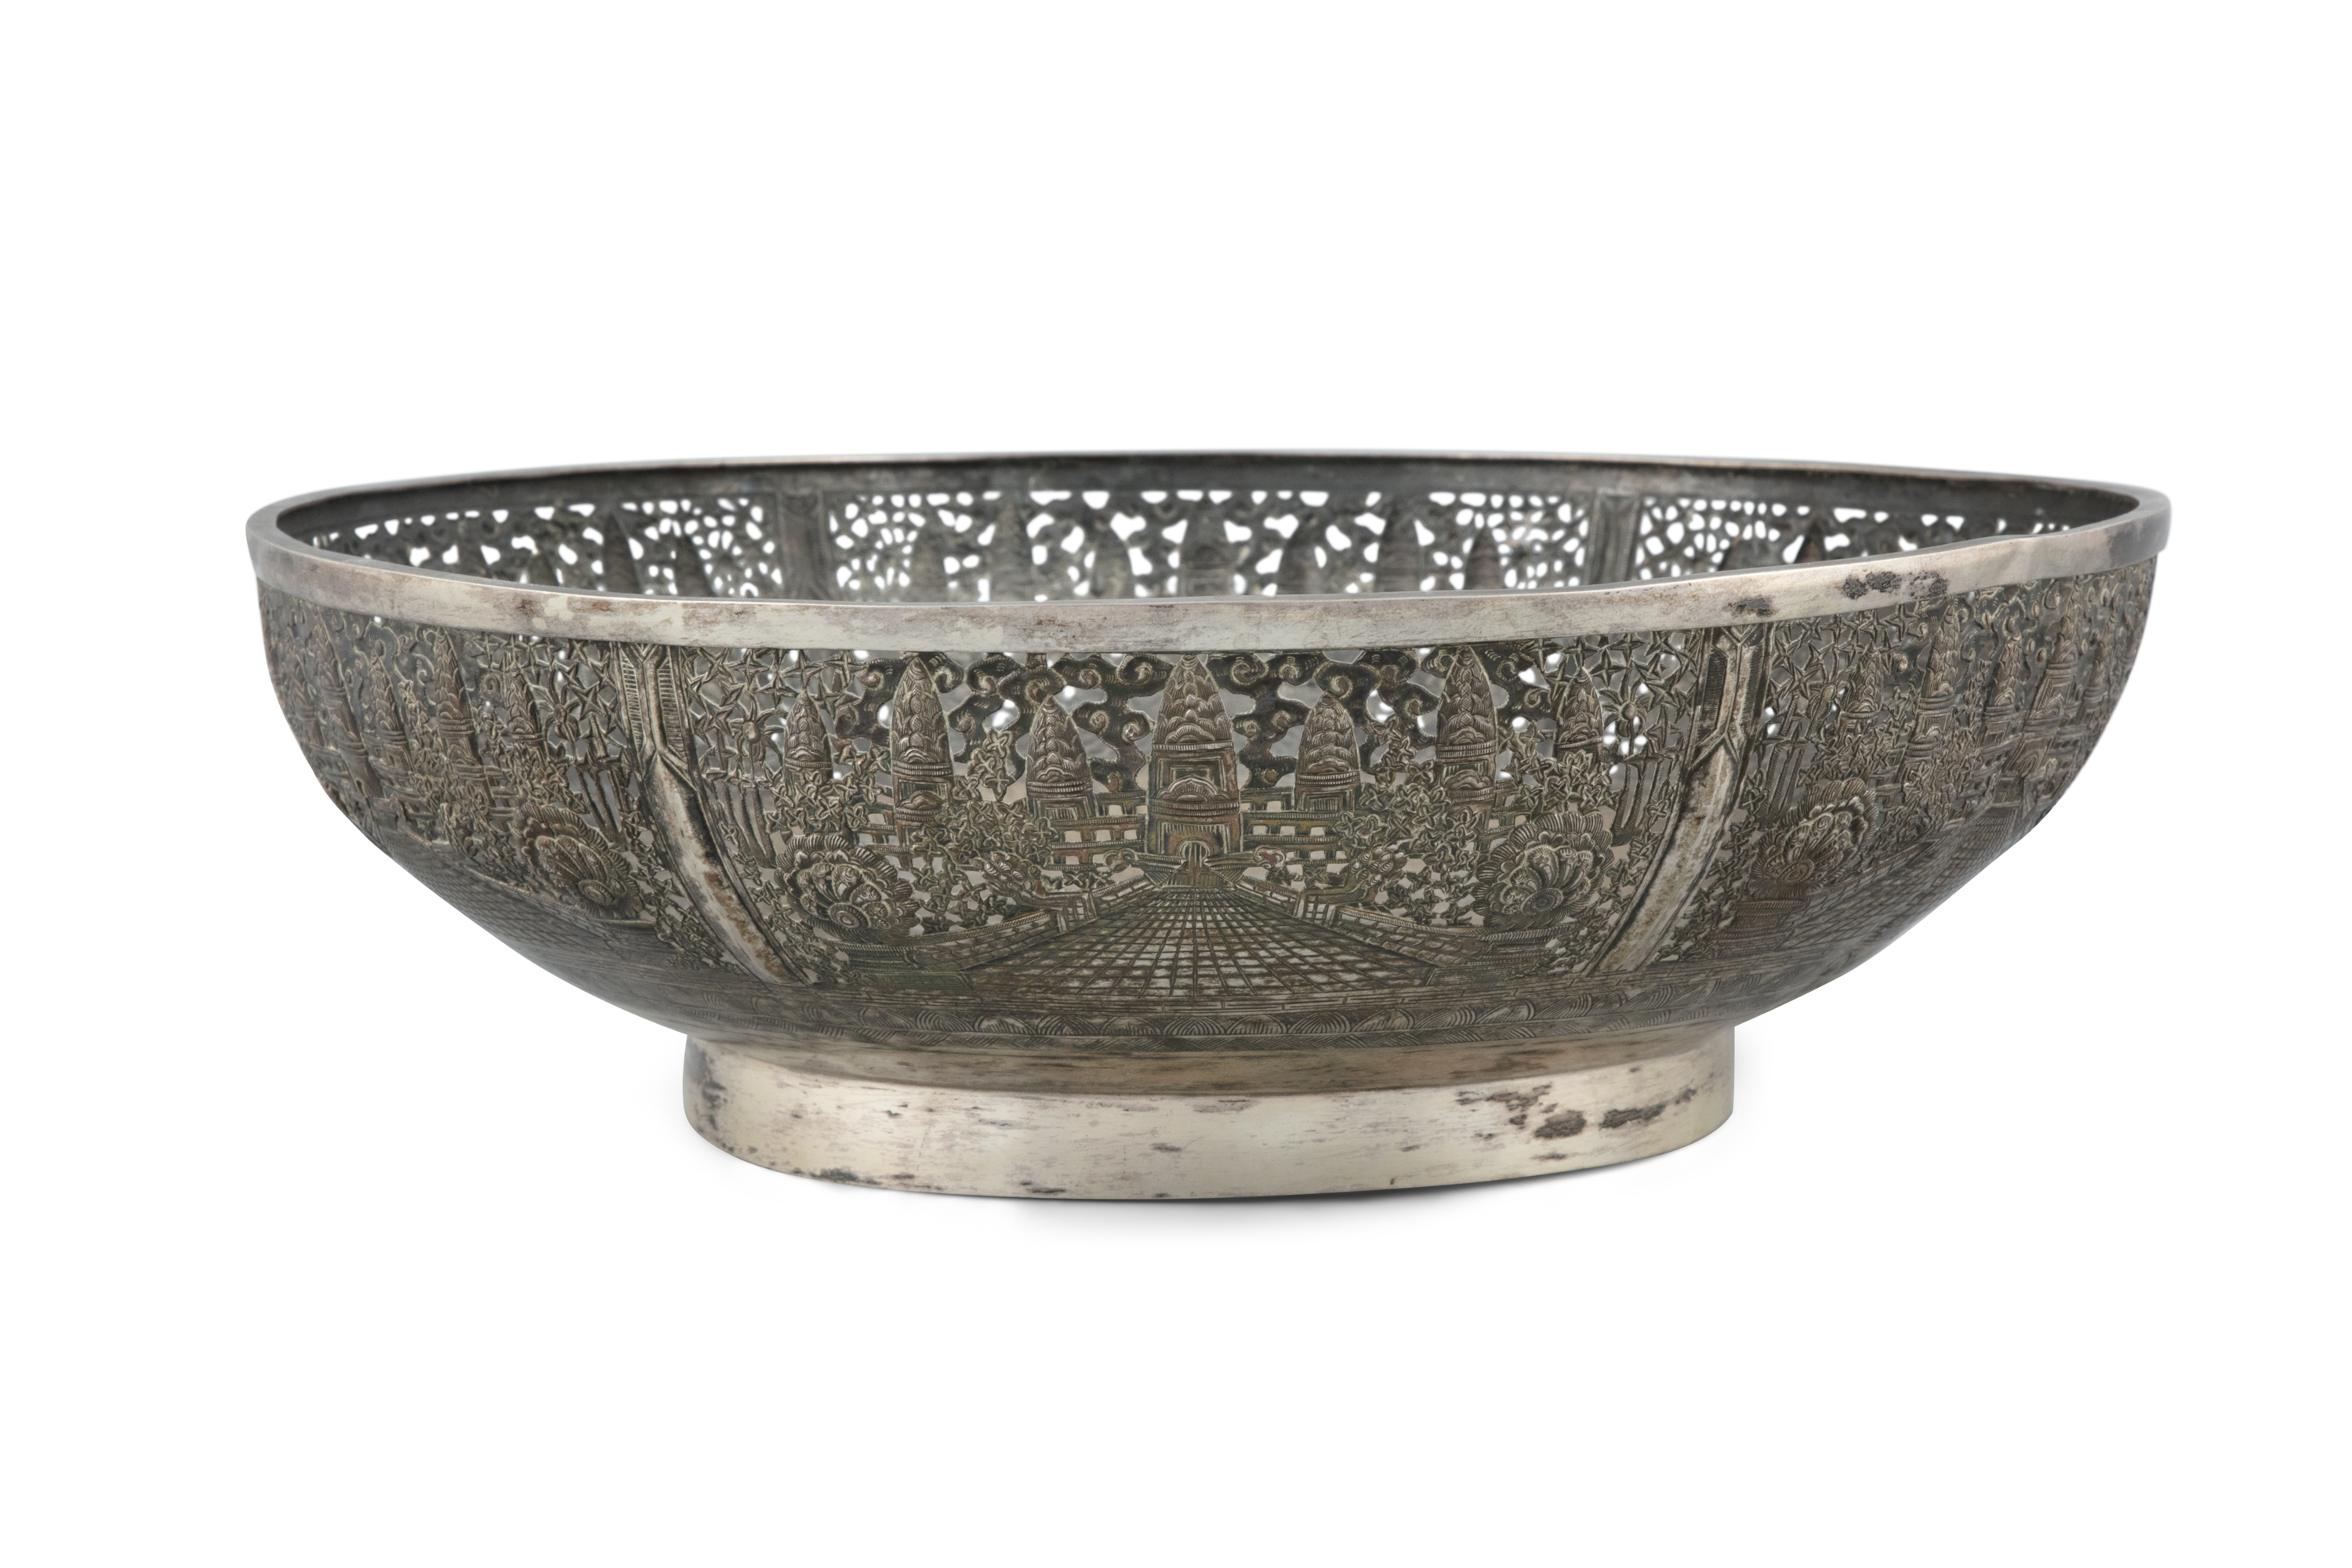 A LARGE RETICULATED 'ANGKOR VAT' SILVER BOWL Siam / Indochina, 20th century H: 10 cm - D: 28,5 cm